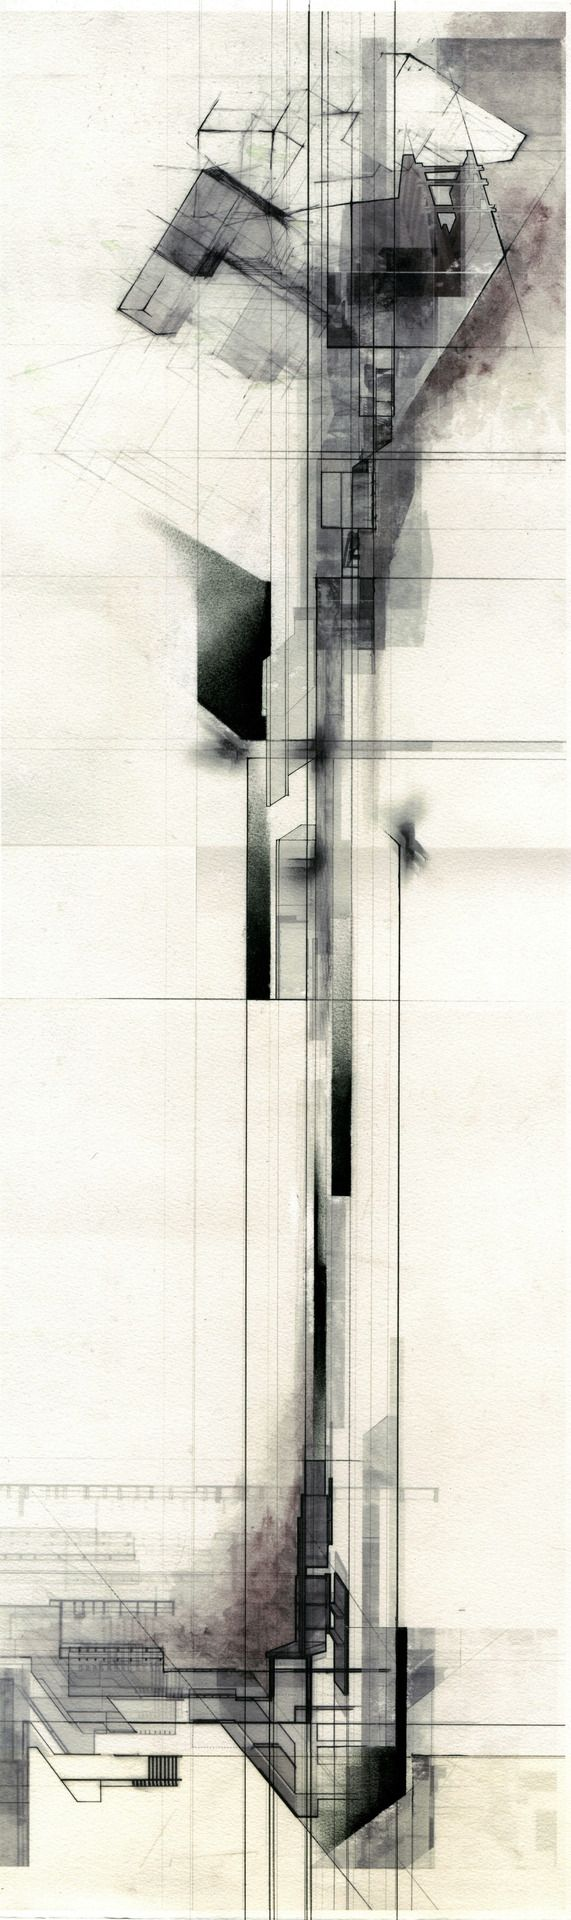 conceptual architecture /// Collin Cobia // tower diagram